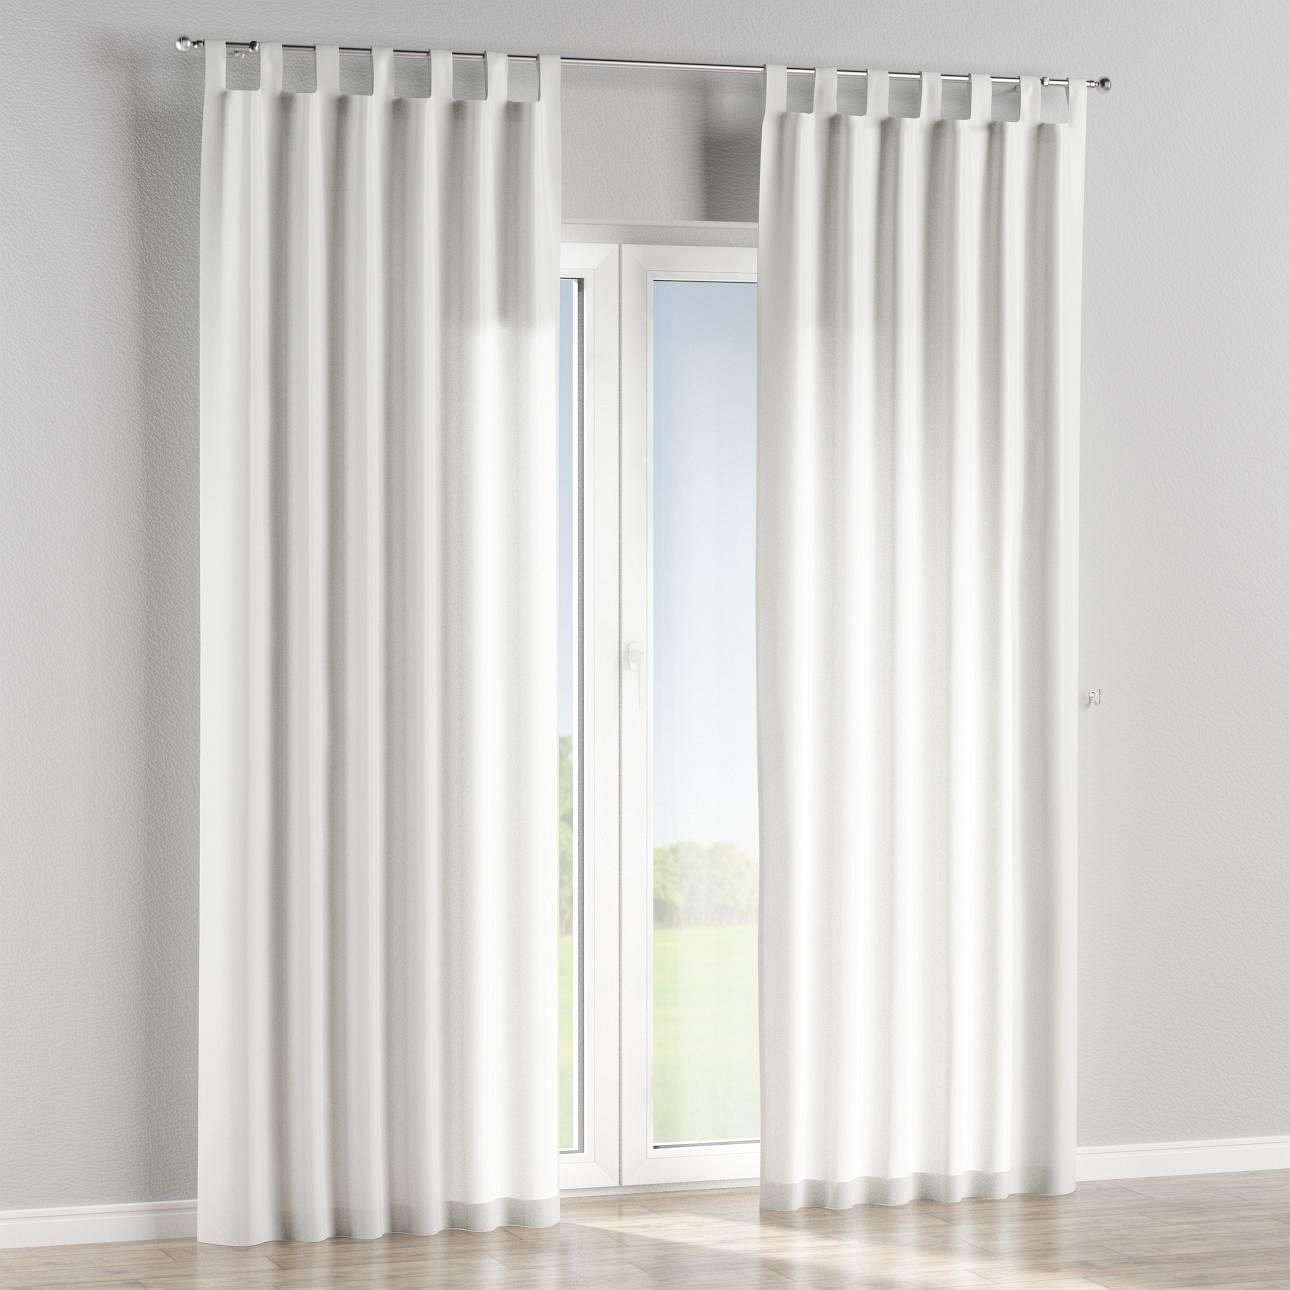 Tab top curtains in collection Marina, fabric: 140-16